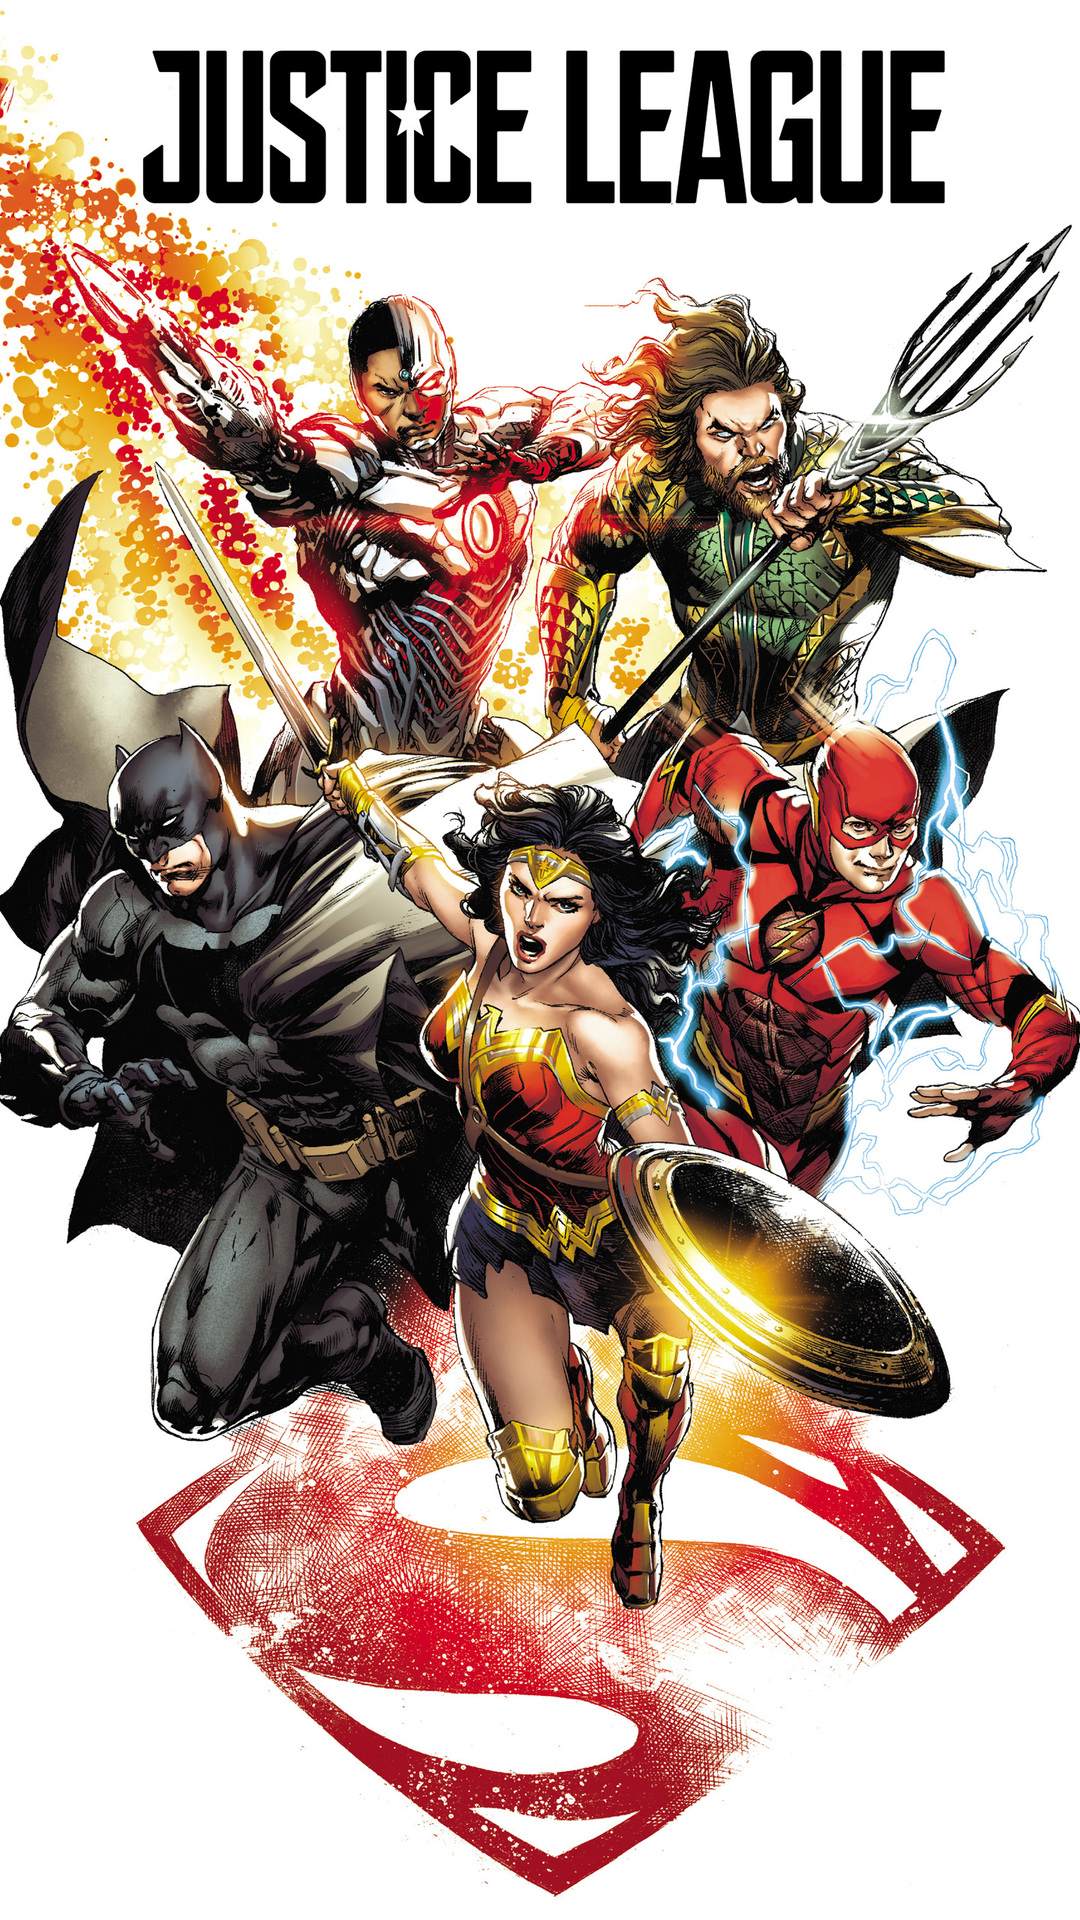 1080x1920 Justice League 2017 Comic Art Iphone 76s6 Plus Pixel Xl